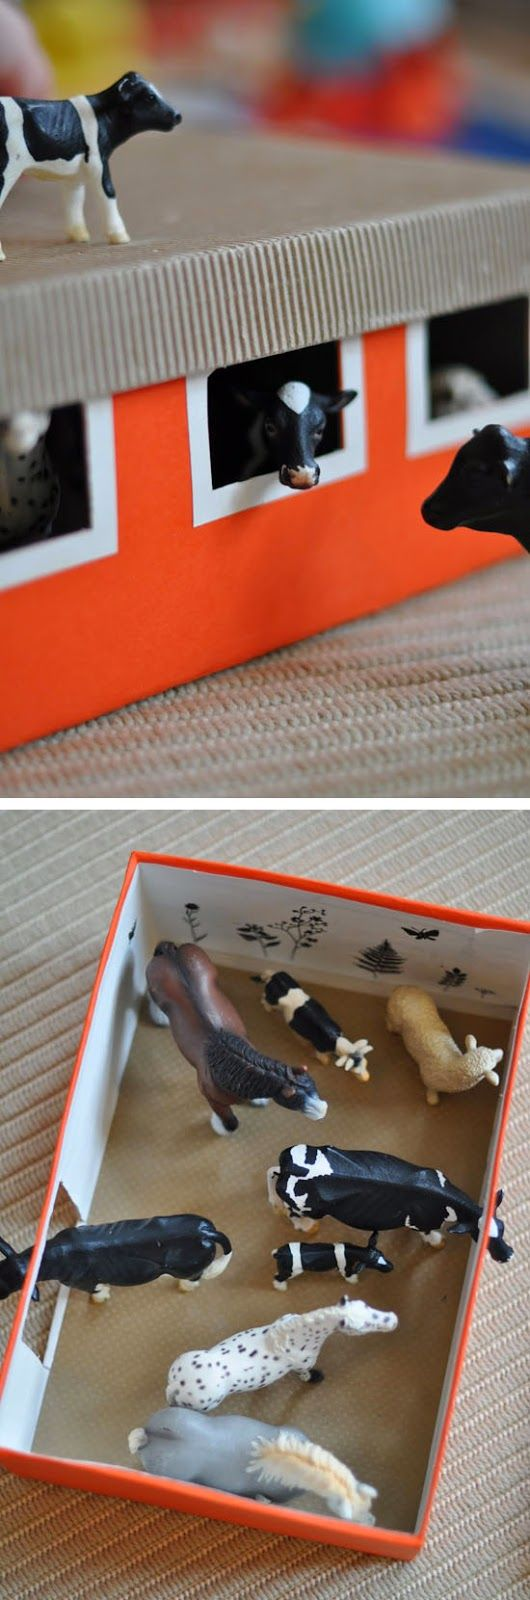 mommo design: DIY TOYS - shoe box farm